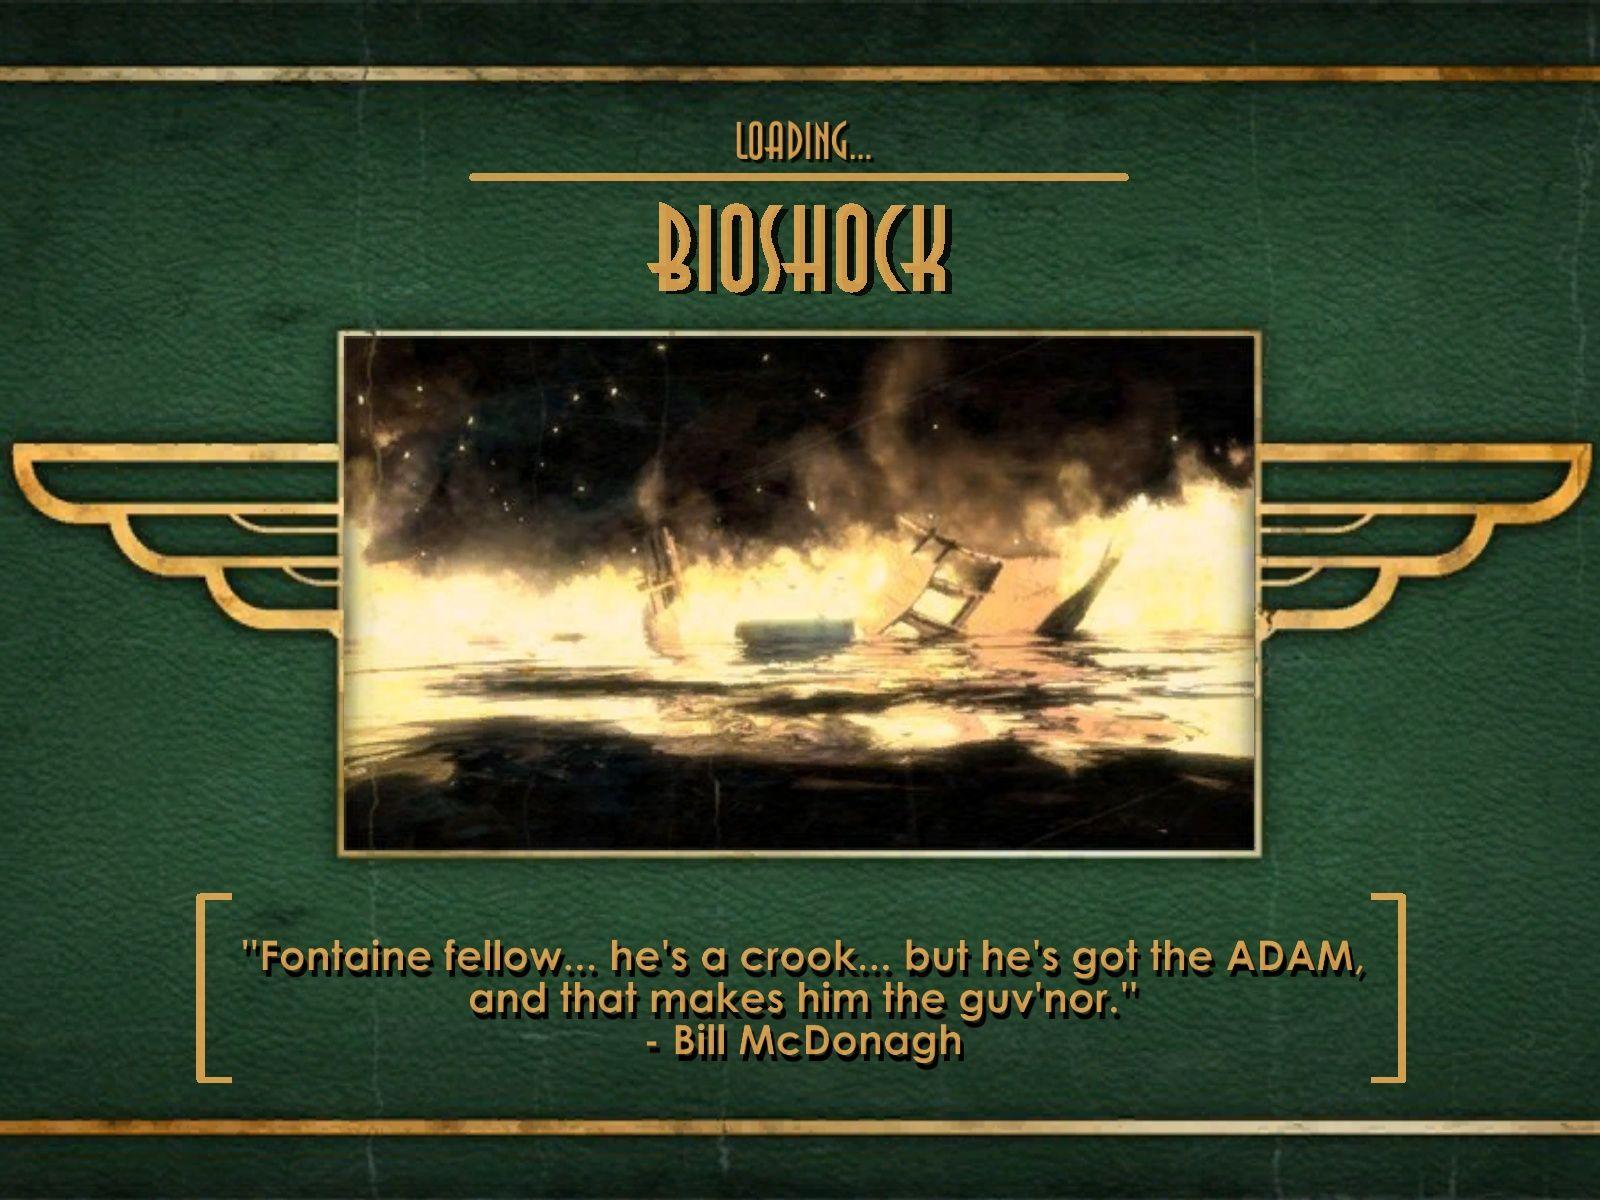 BioShock Windows Stylish loading screen